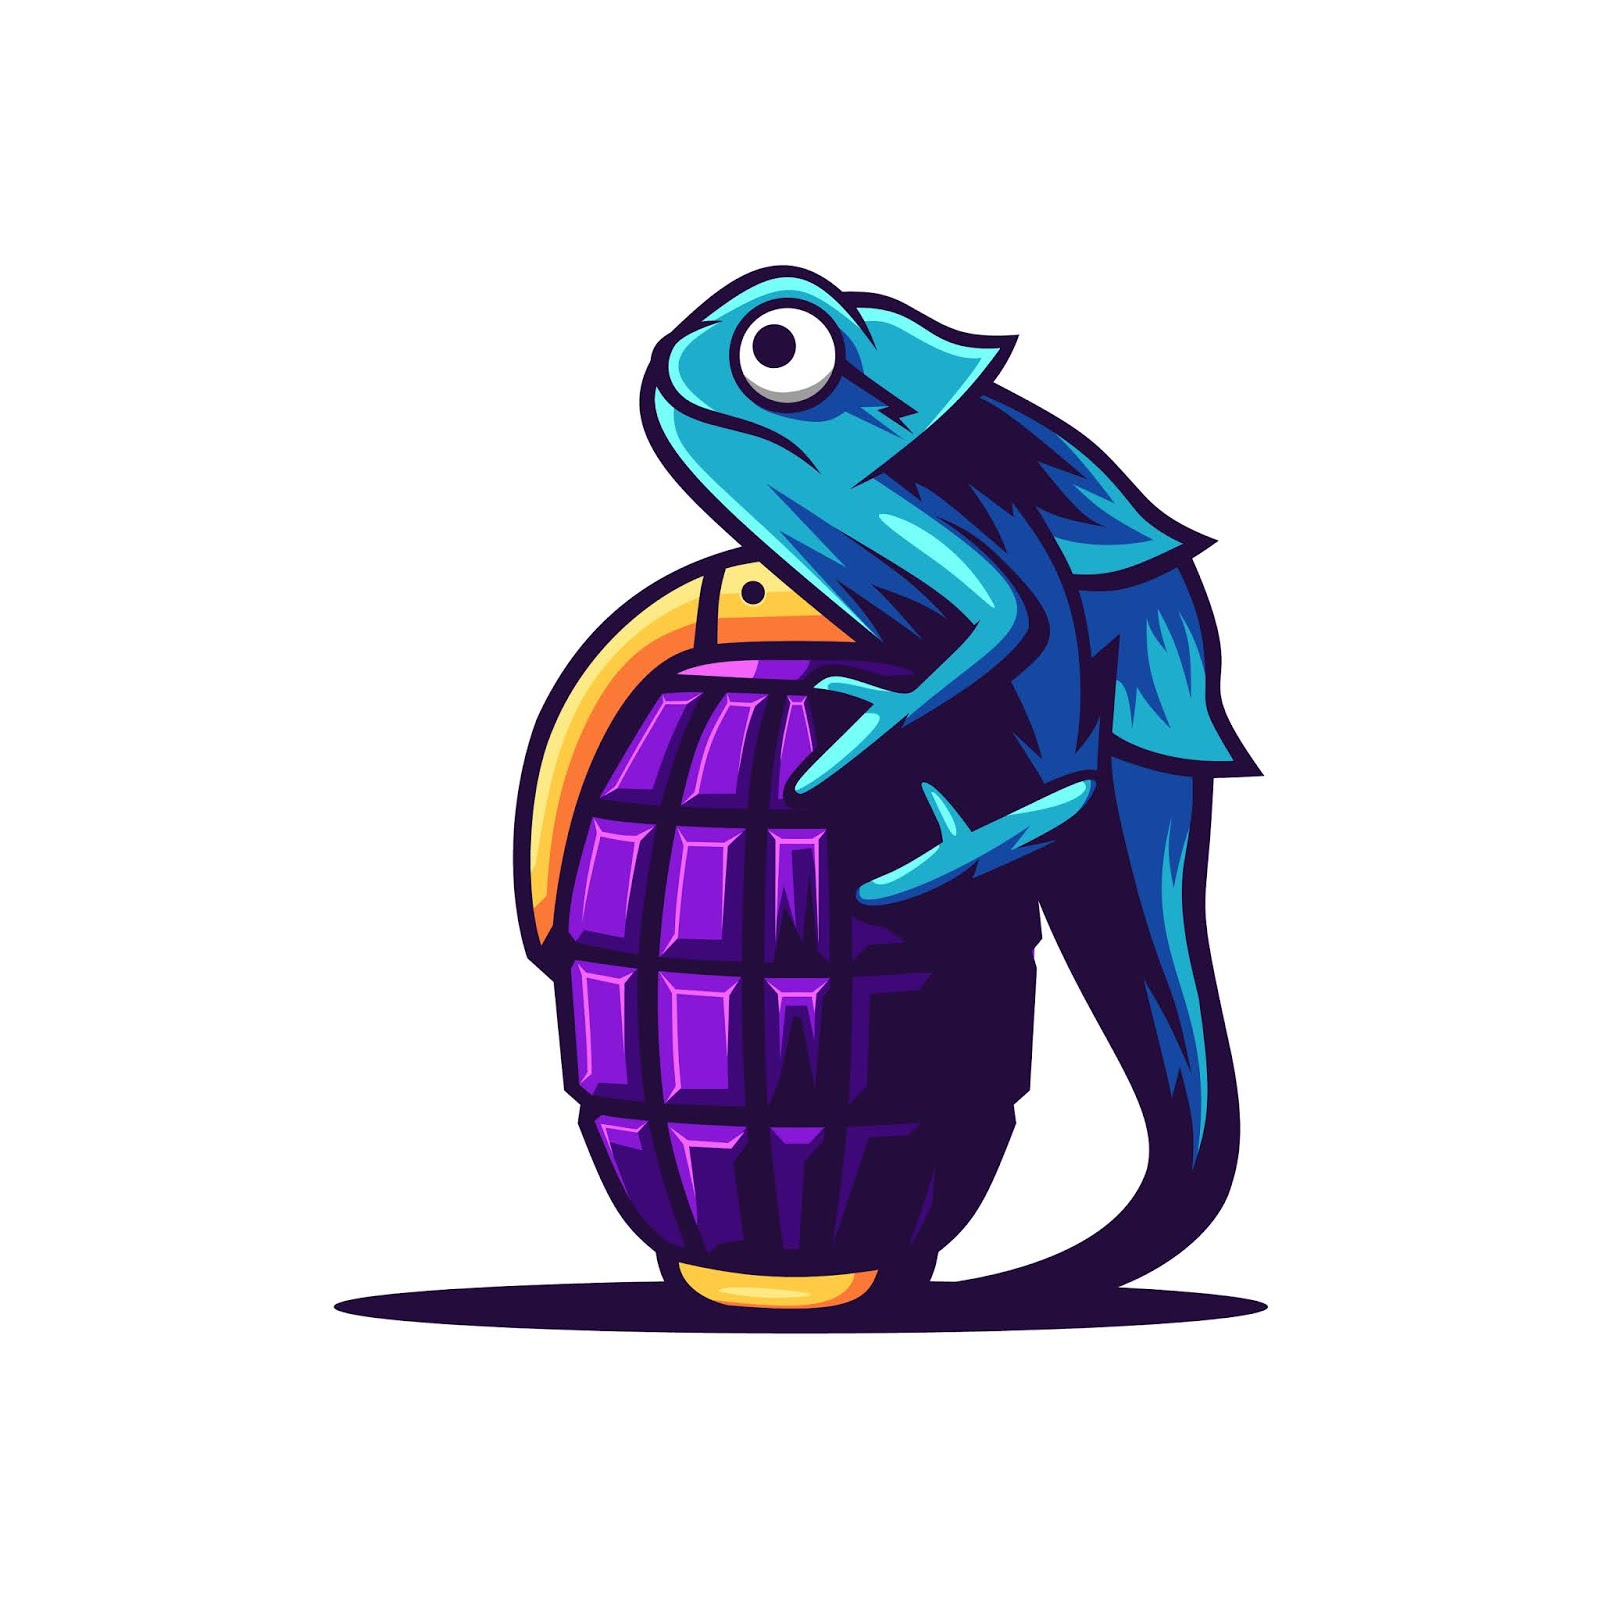 Coloful Chameleon With Grenade Illustration Free Download Vector CDR, AI, EPS and PNG Formats